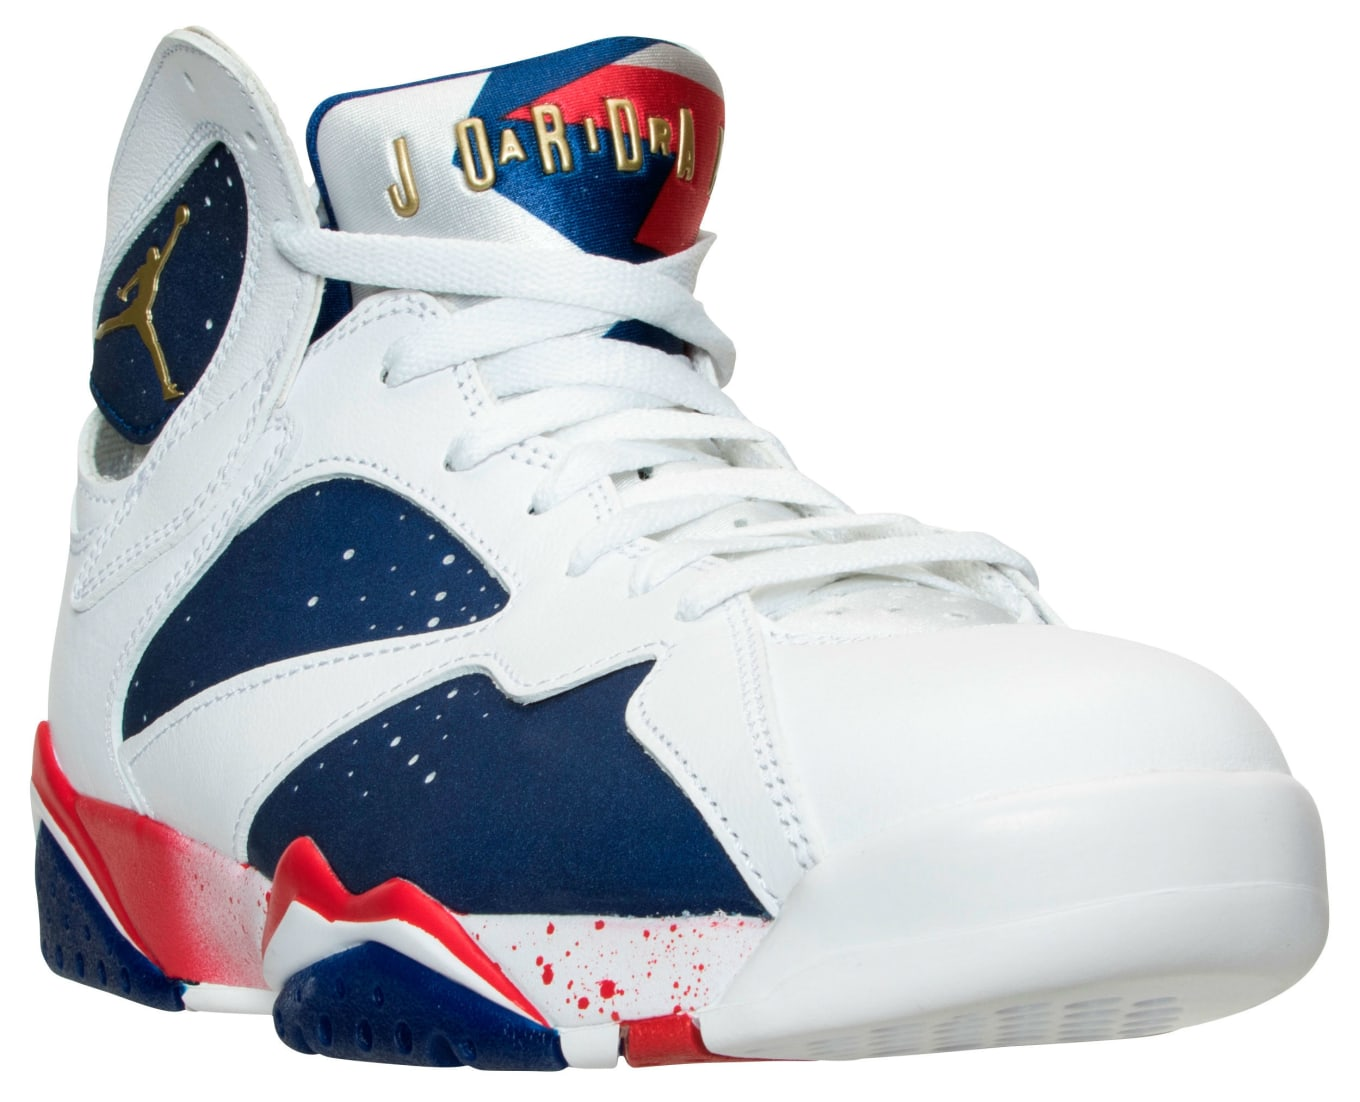 b85279827b289c Air Jordan 7 Olympic Tinker Alternate Release Date 304775-123